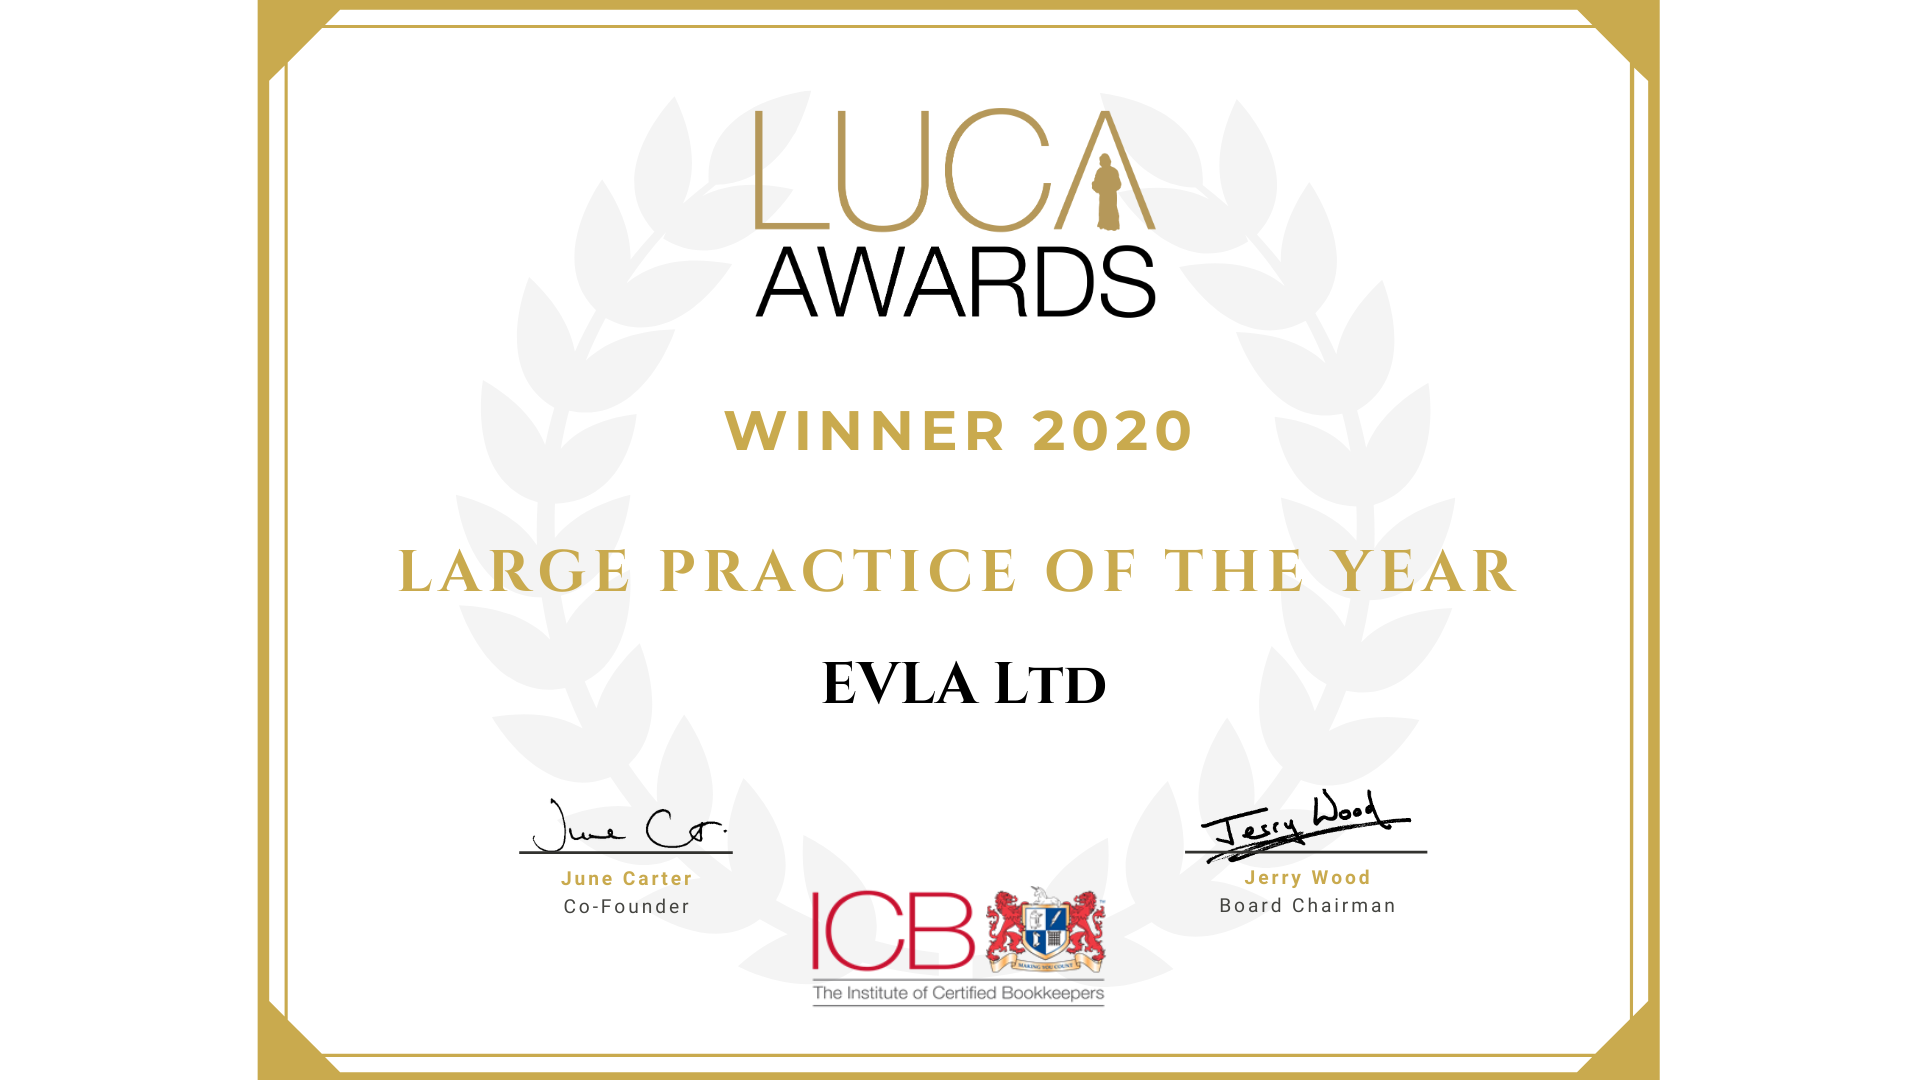 Large practice of the year 2020 certificate